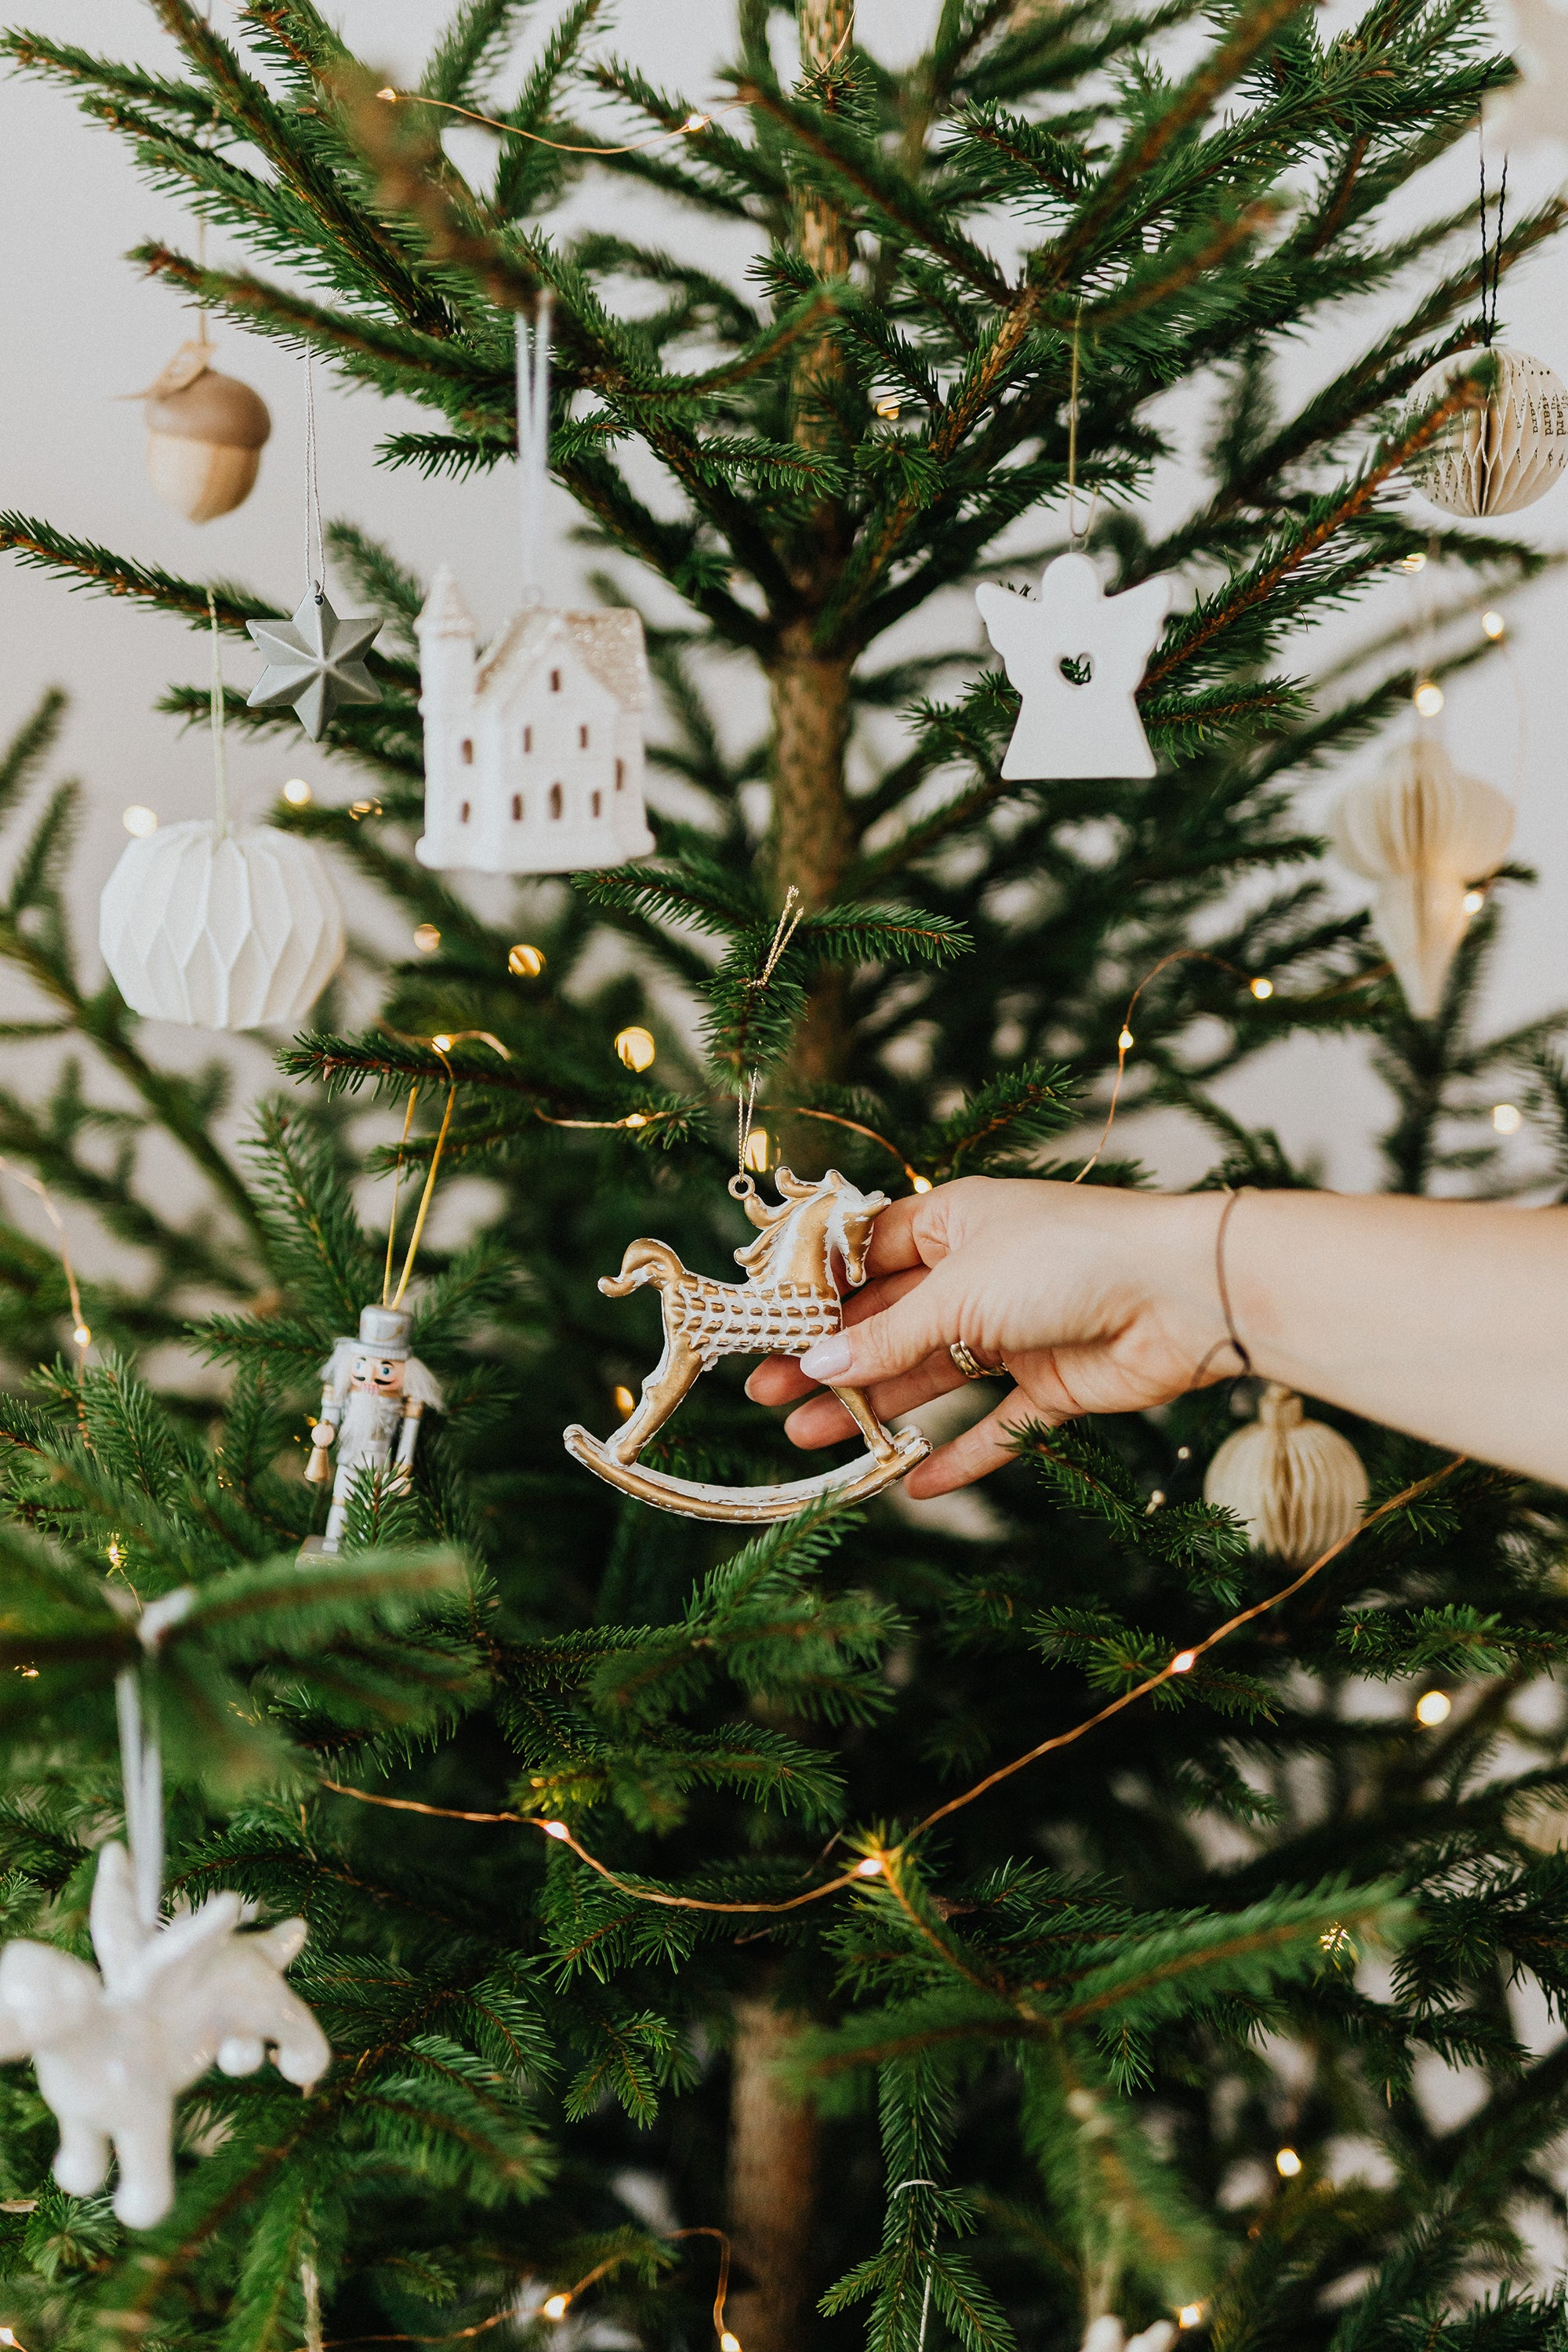 Safari Journal / Blog by Safari Fusion | Christmas prettiness | Decorating the Christmas tree